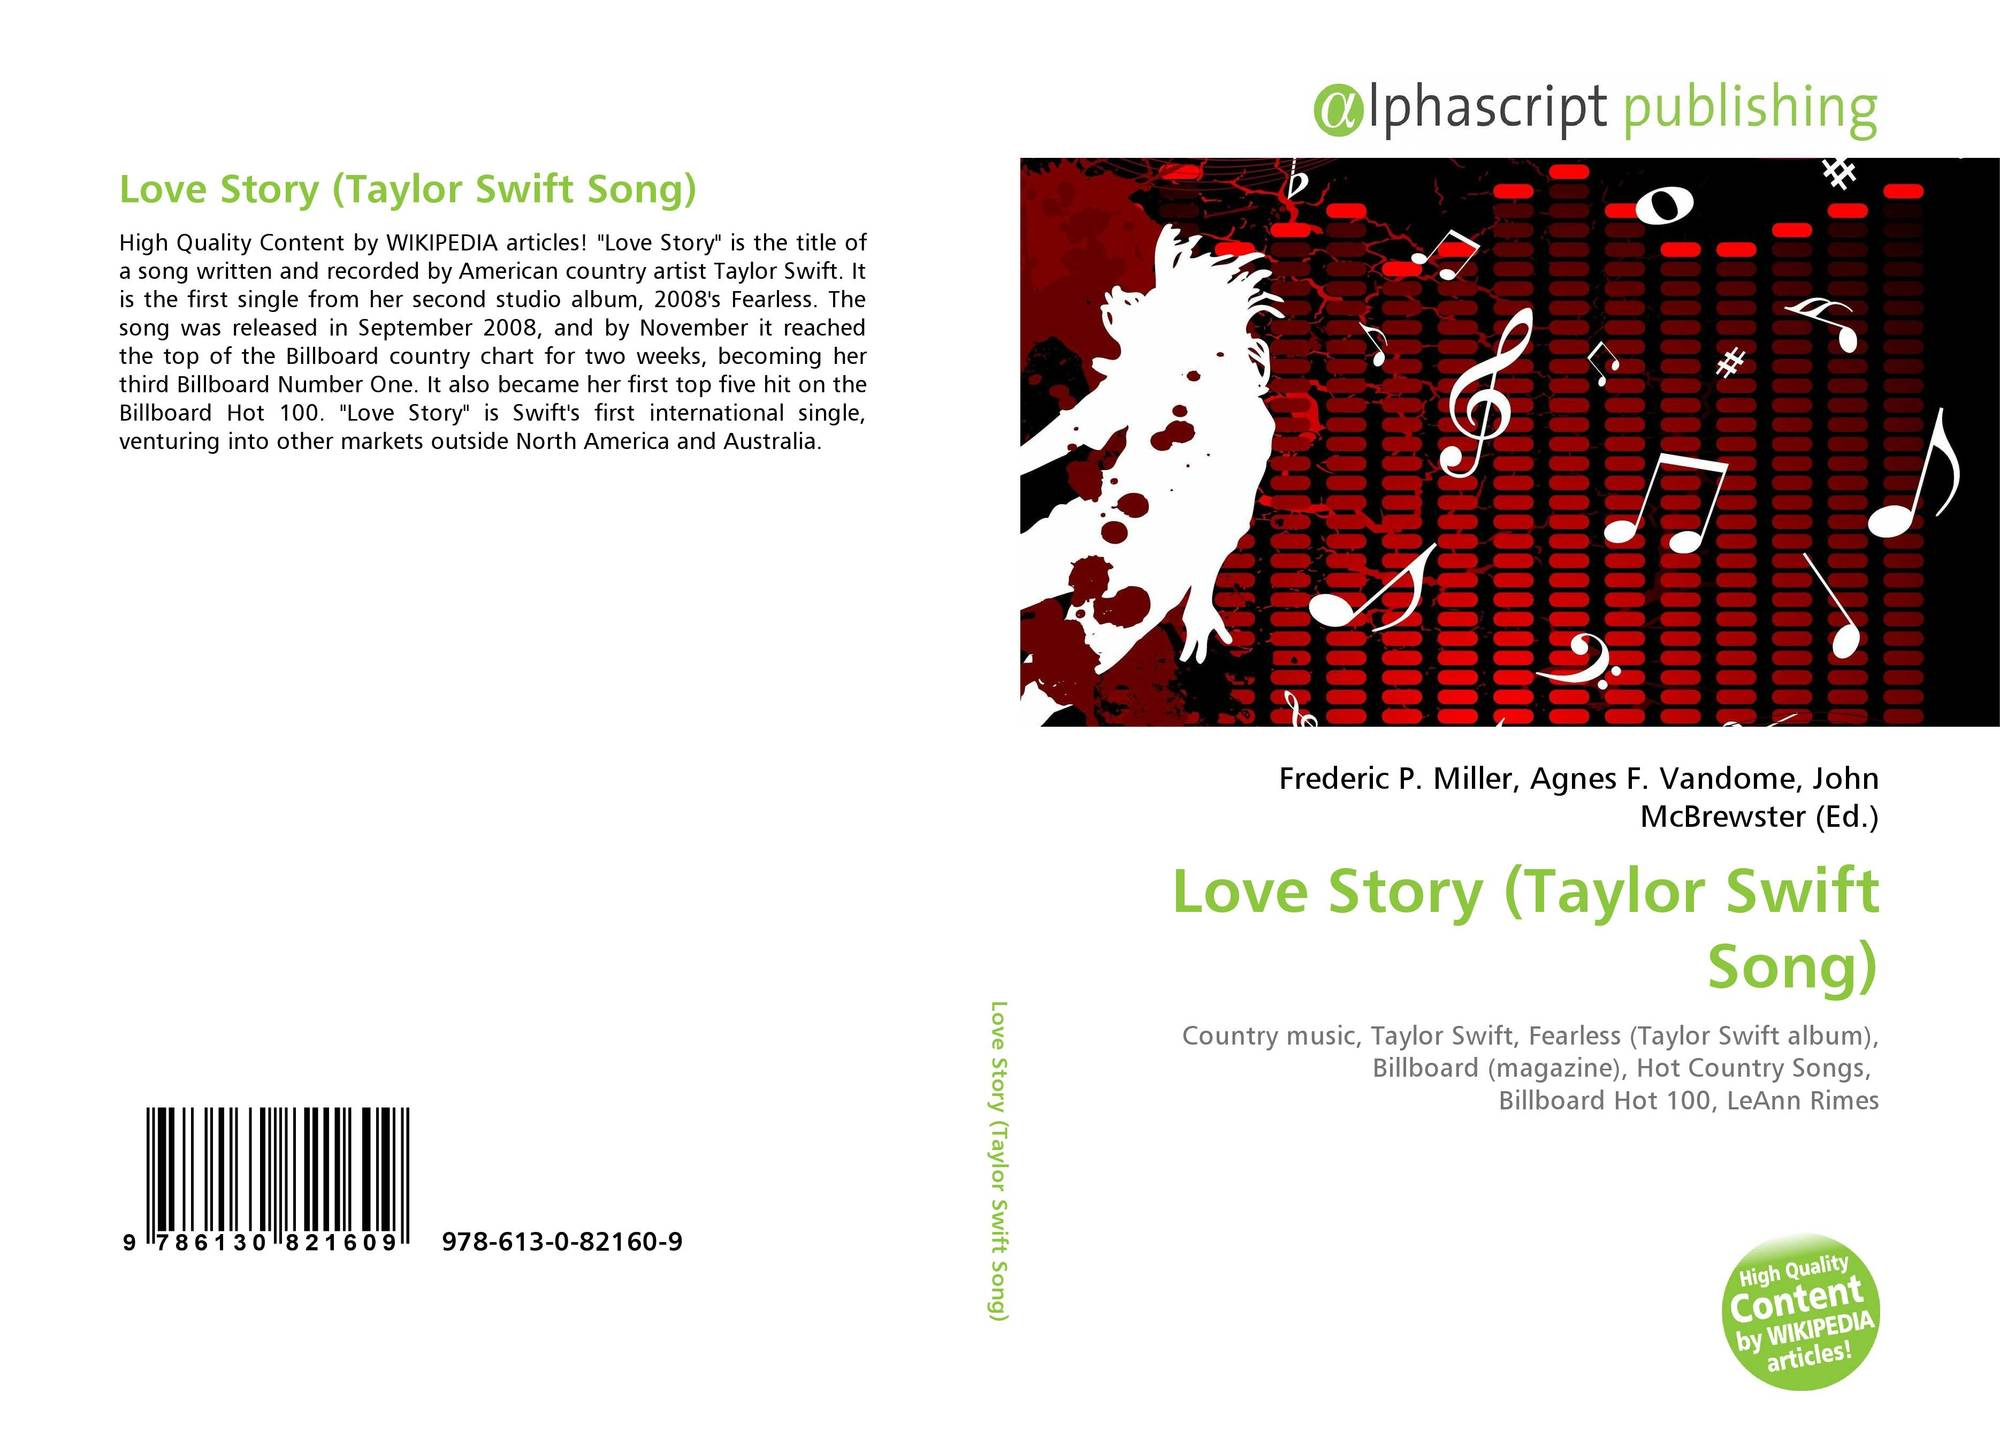 Love Story Taylor Swift Song 978 613 0 82160 9 6130821603 9786130821609